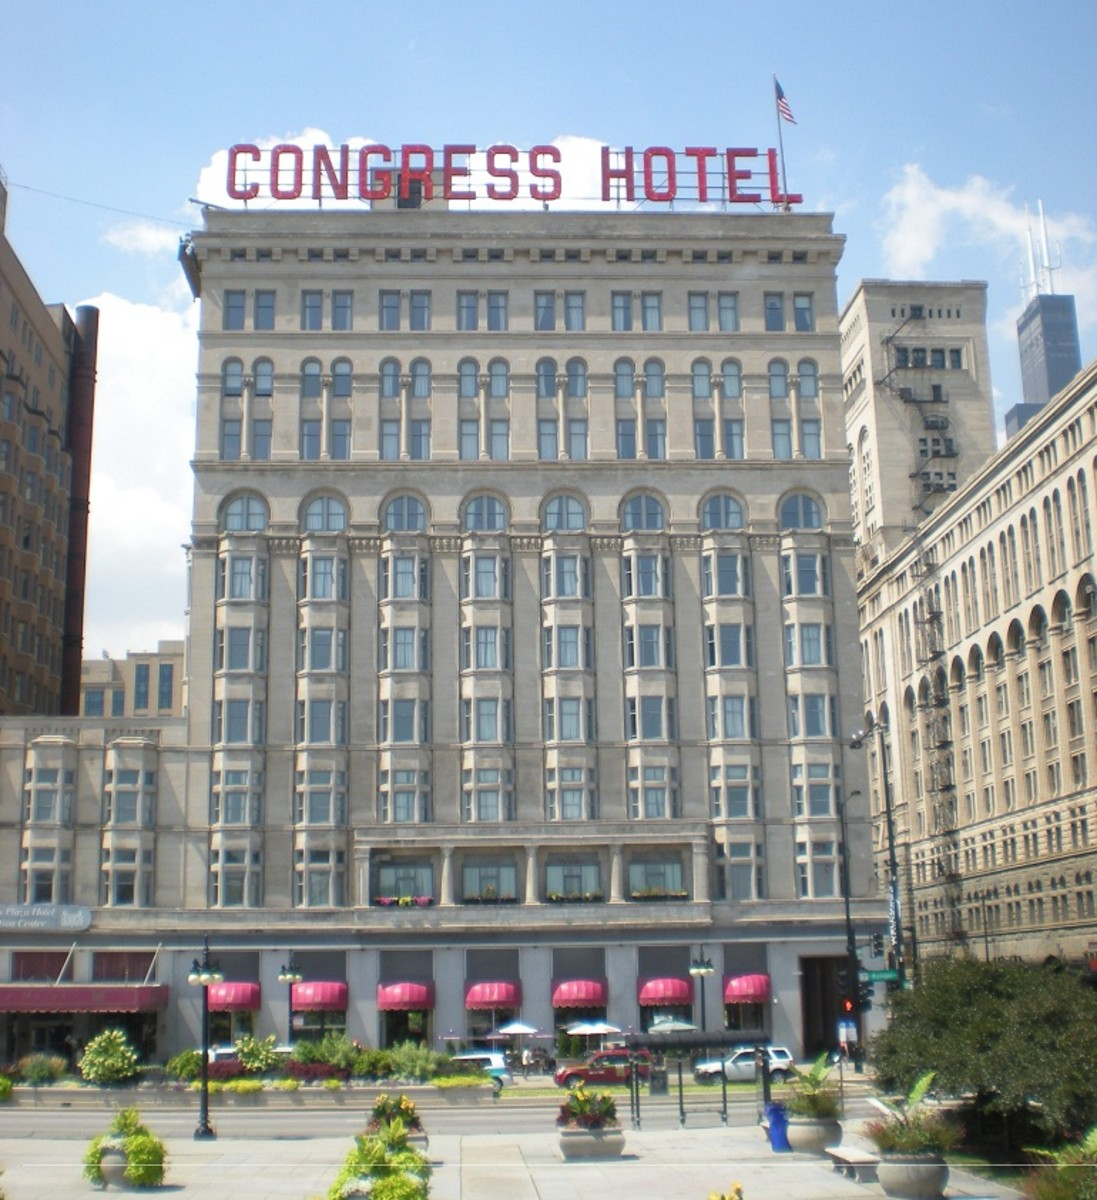 Congress Hotel as seen from Congress Plaza, August 2012.